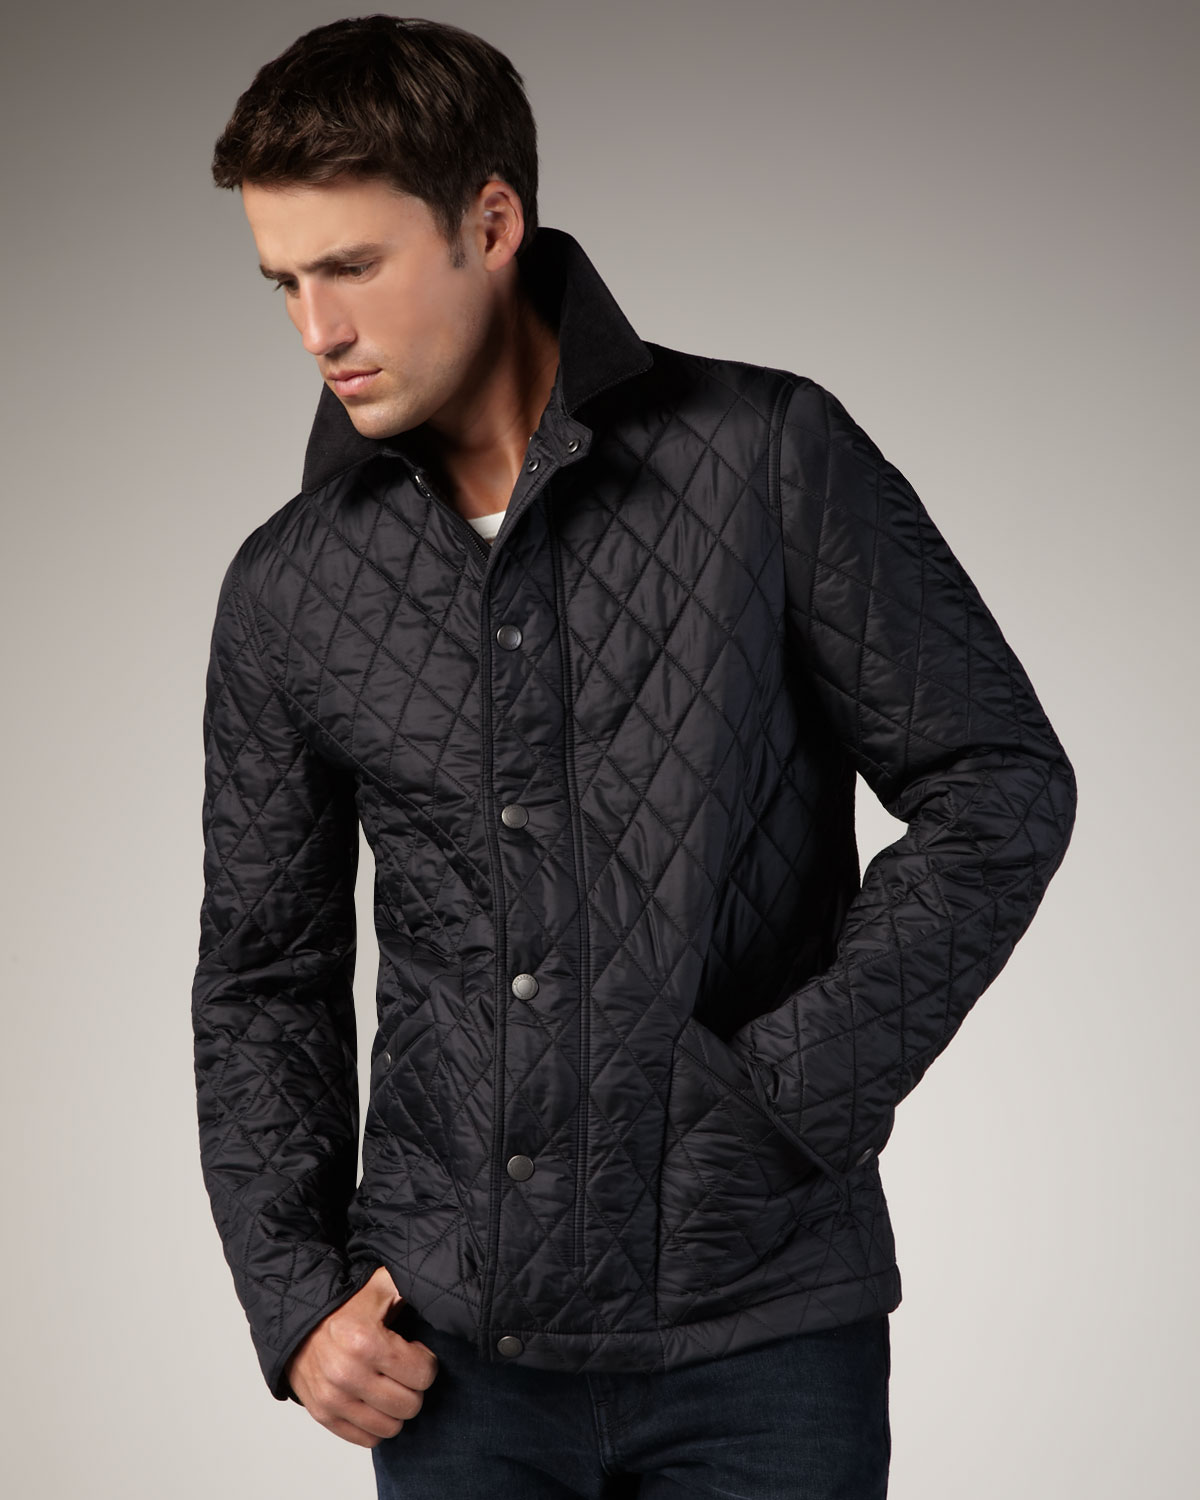 Free shipping BOTH ways on mens quilted jackets, from our vast selection of styles. Fast delivery, and 24/7/ real-person service with a smile. Click or call